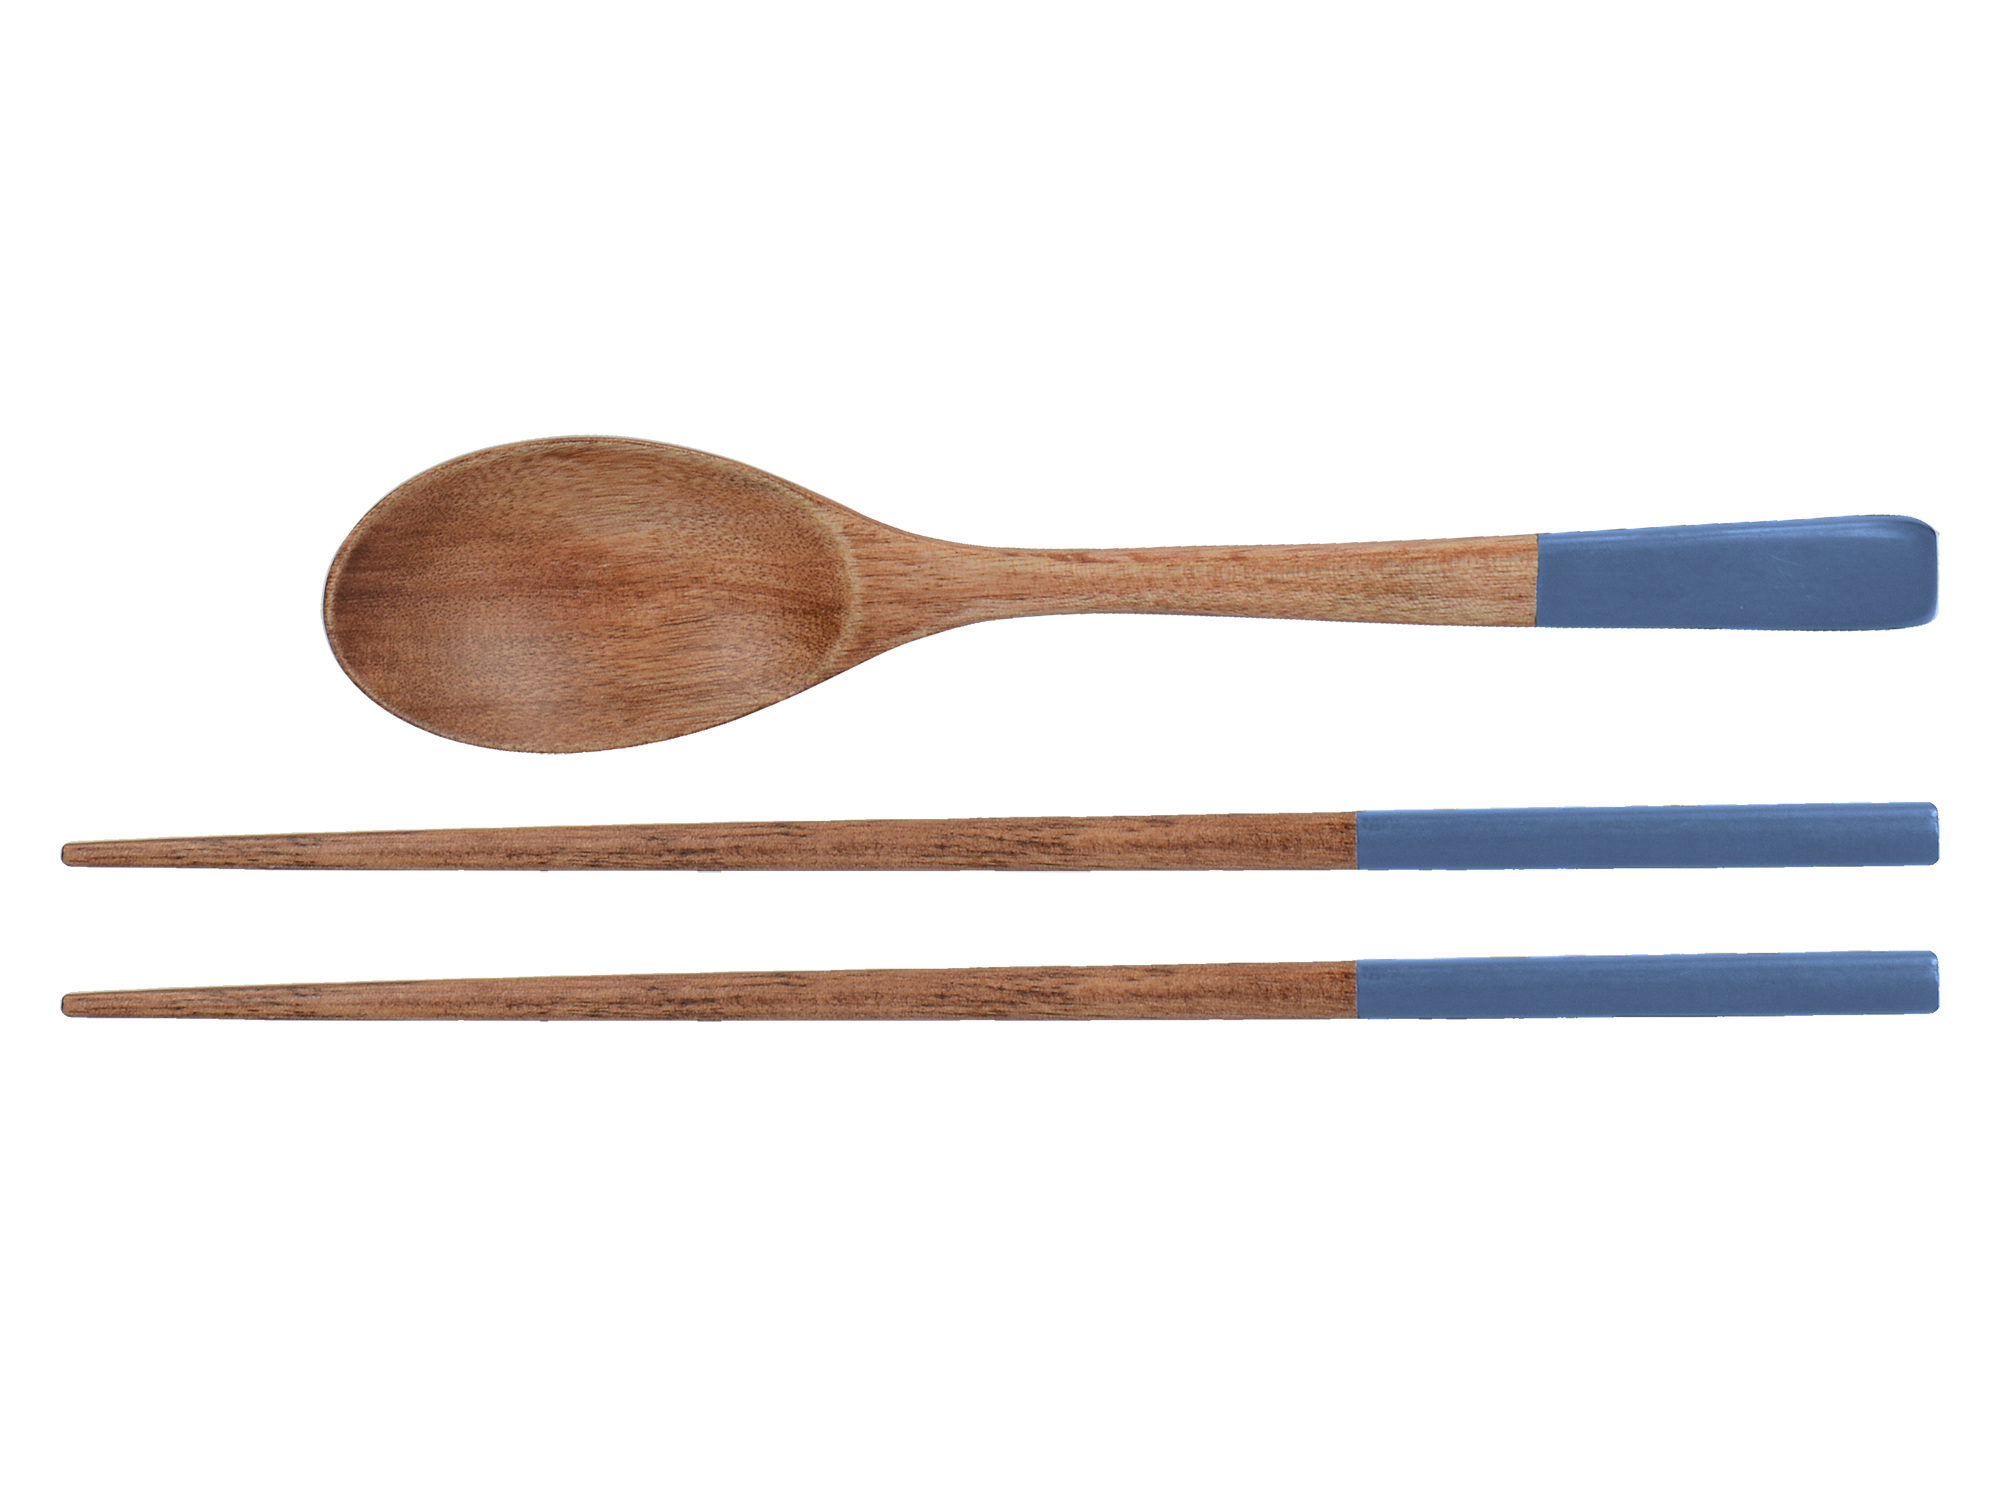 Mikasa Drift Set Of 2 Chopsticks And Spoon